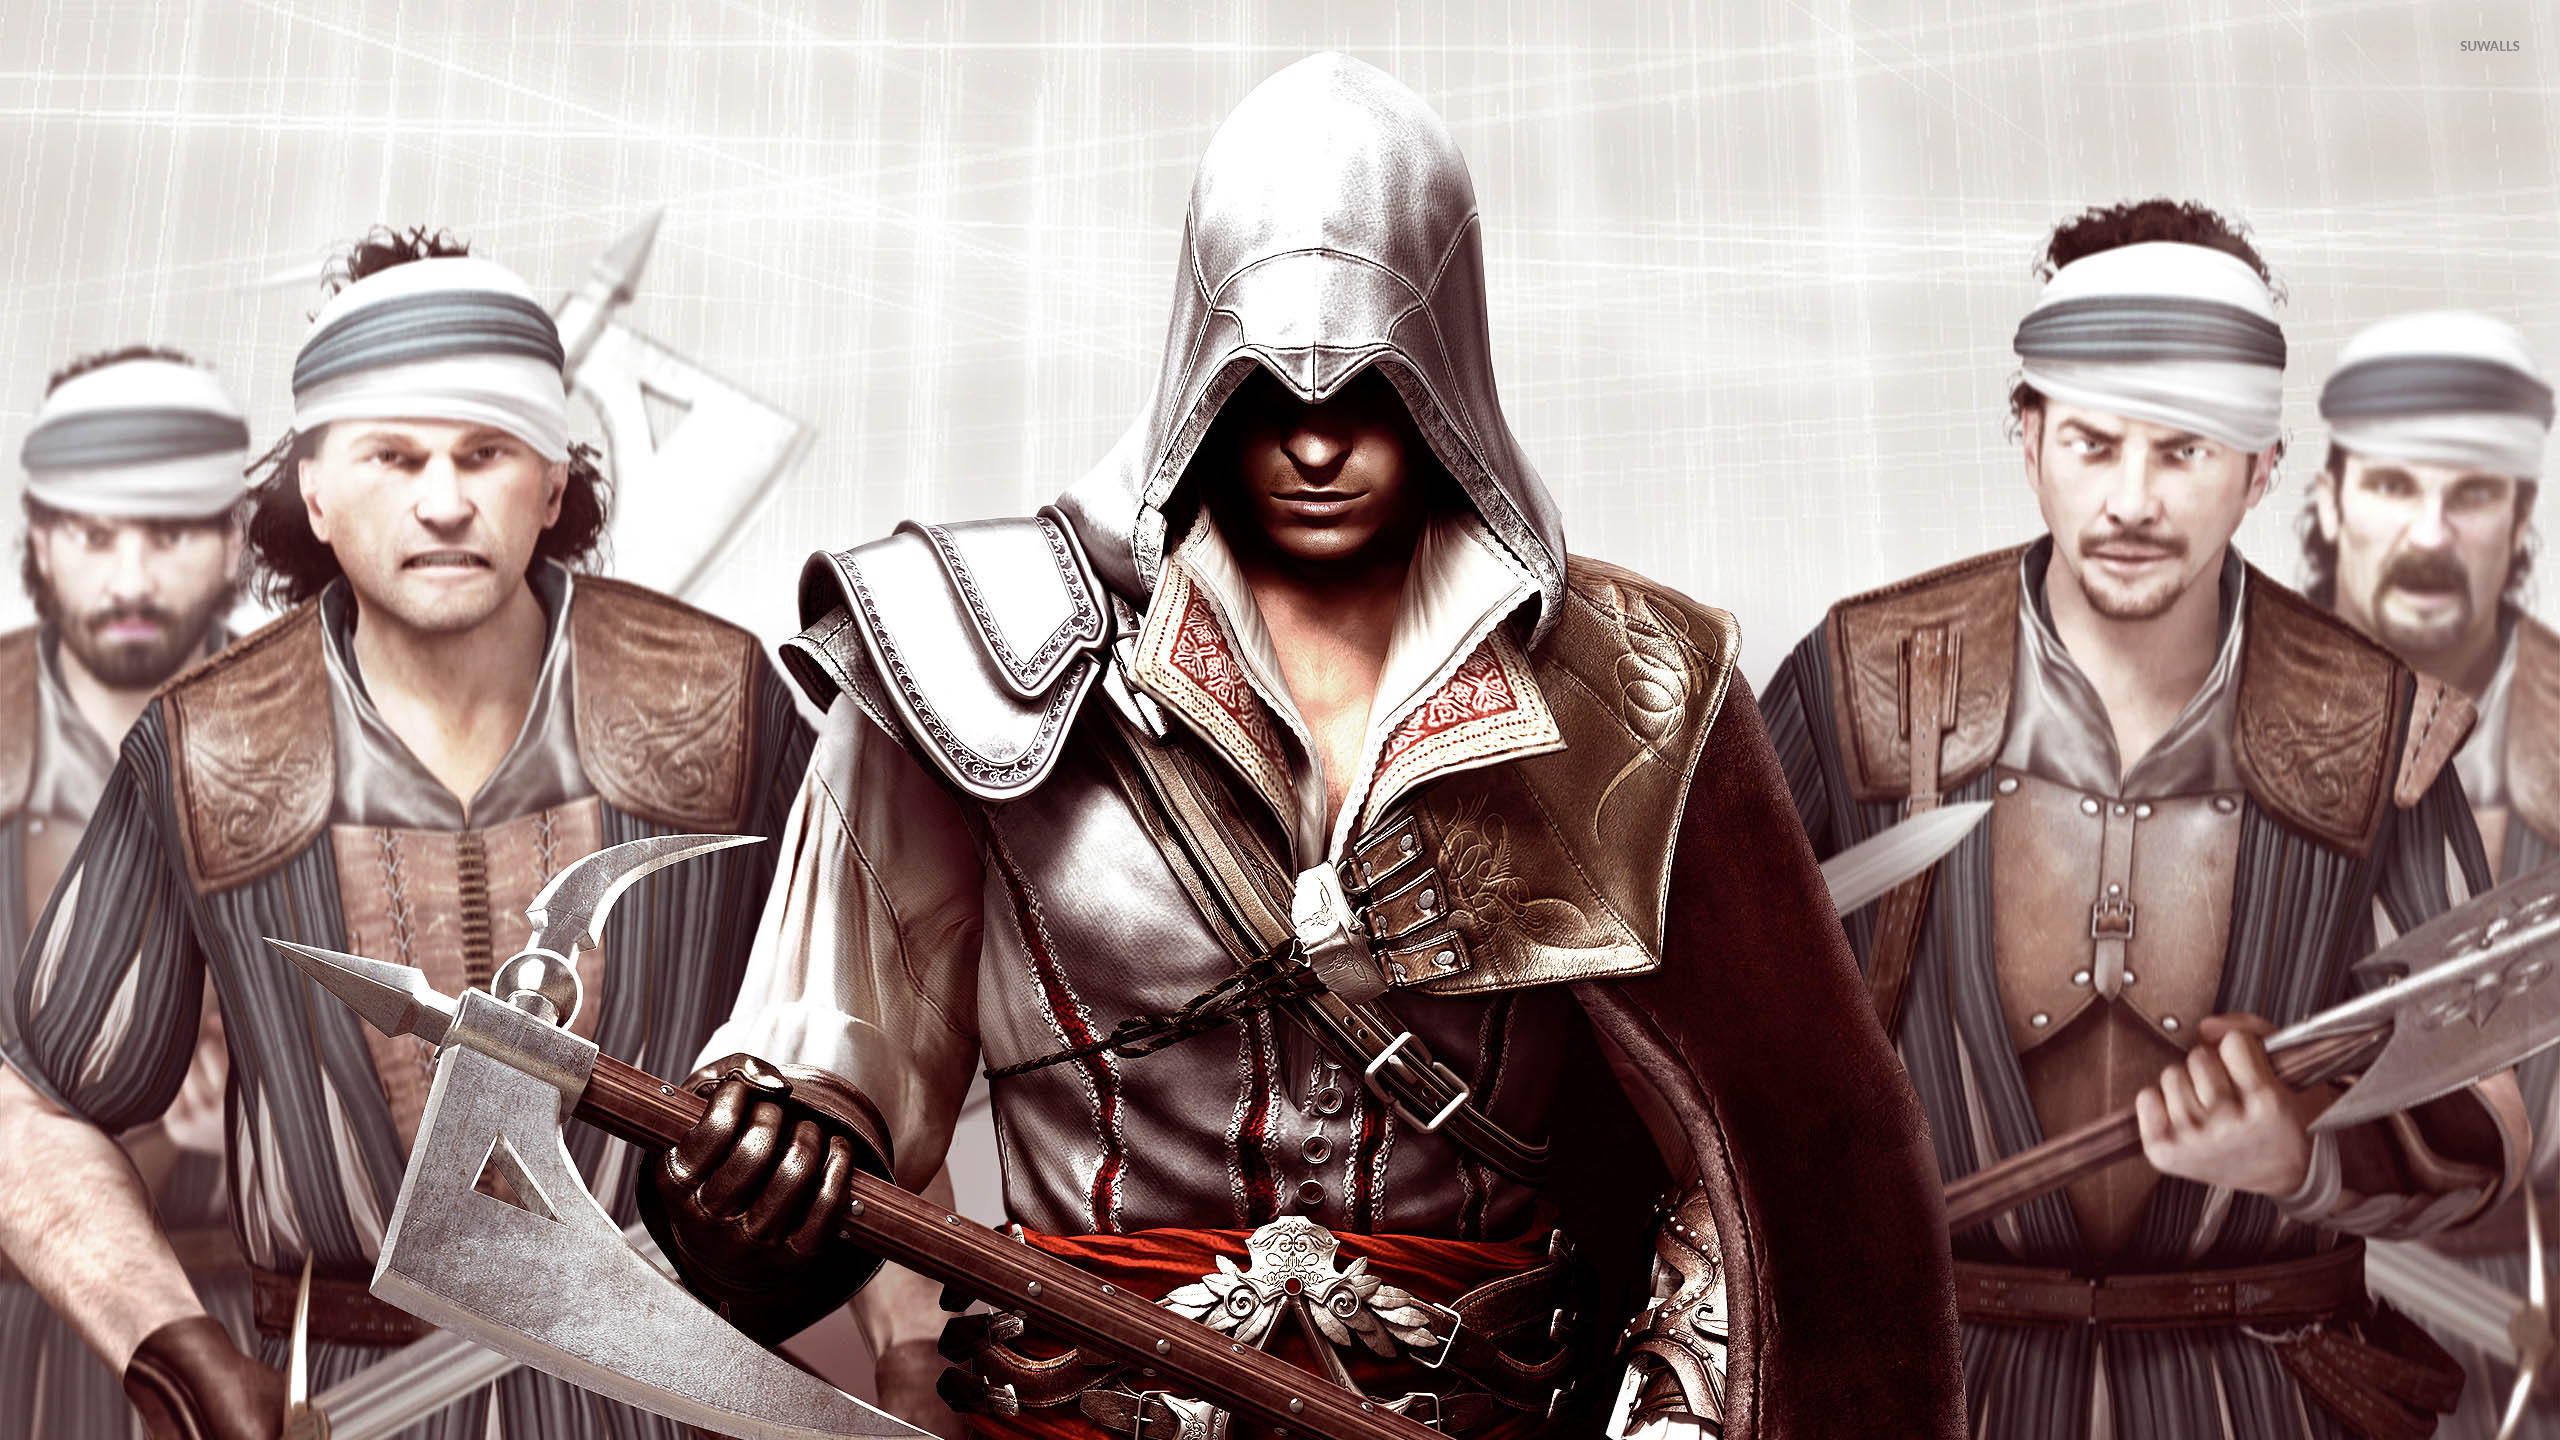 Assassin S Creed Ii 5 Wallpaper Game Wallpapers 40299